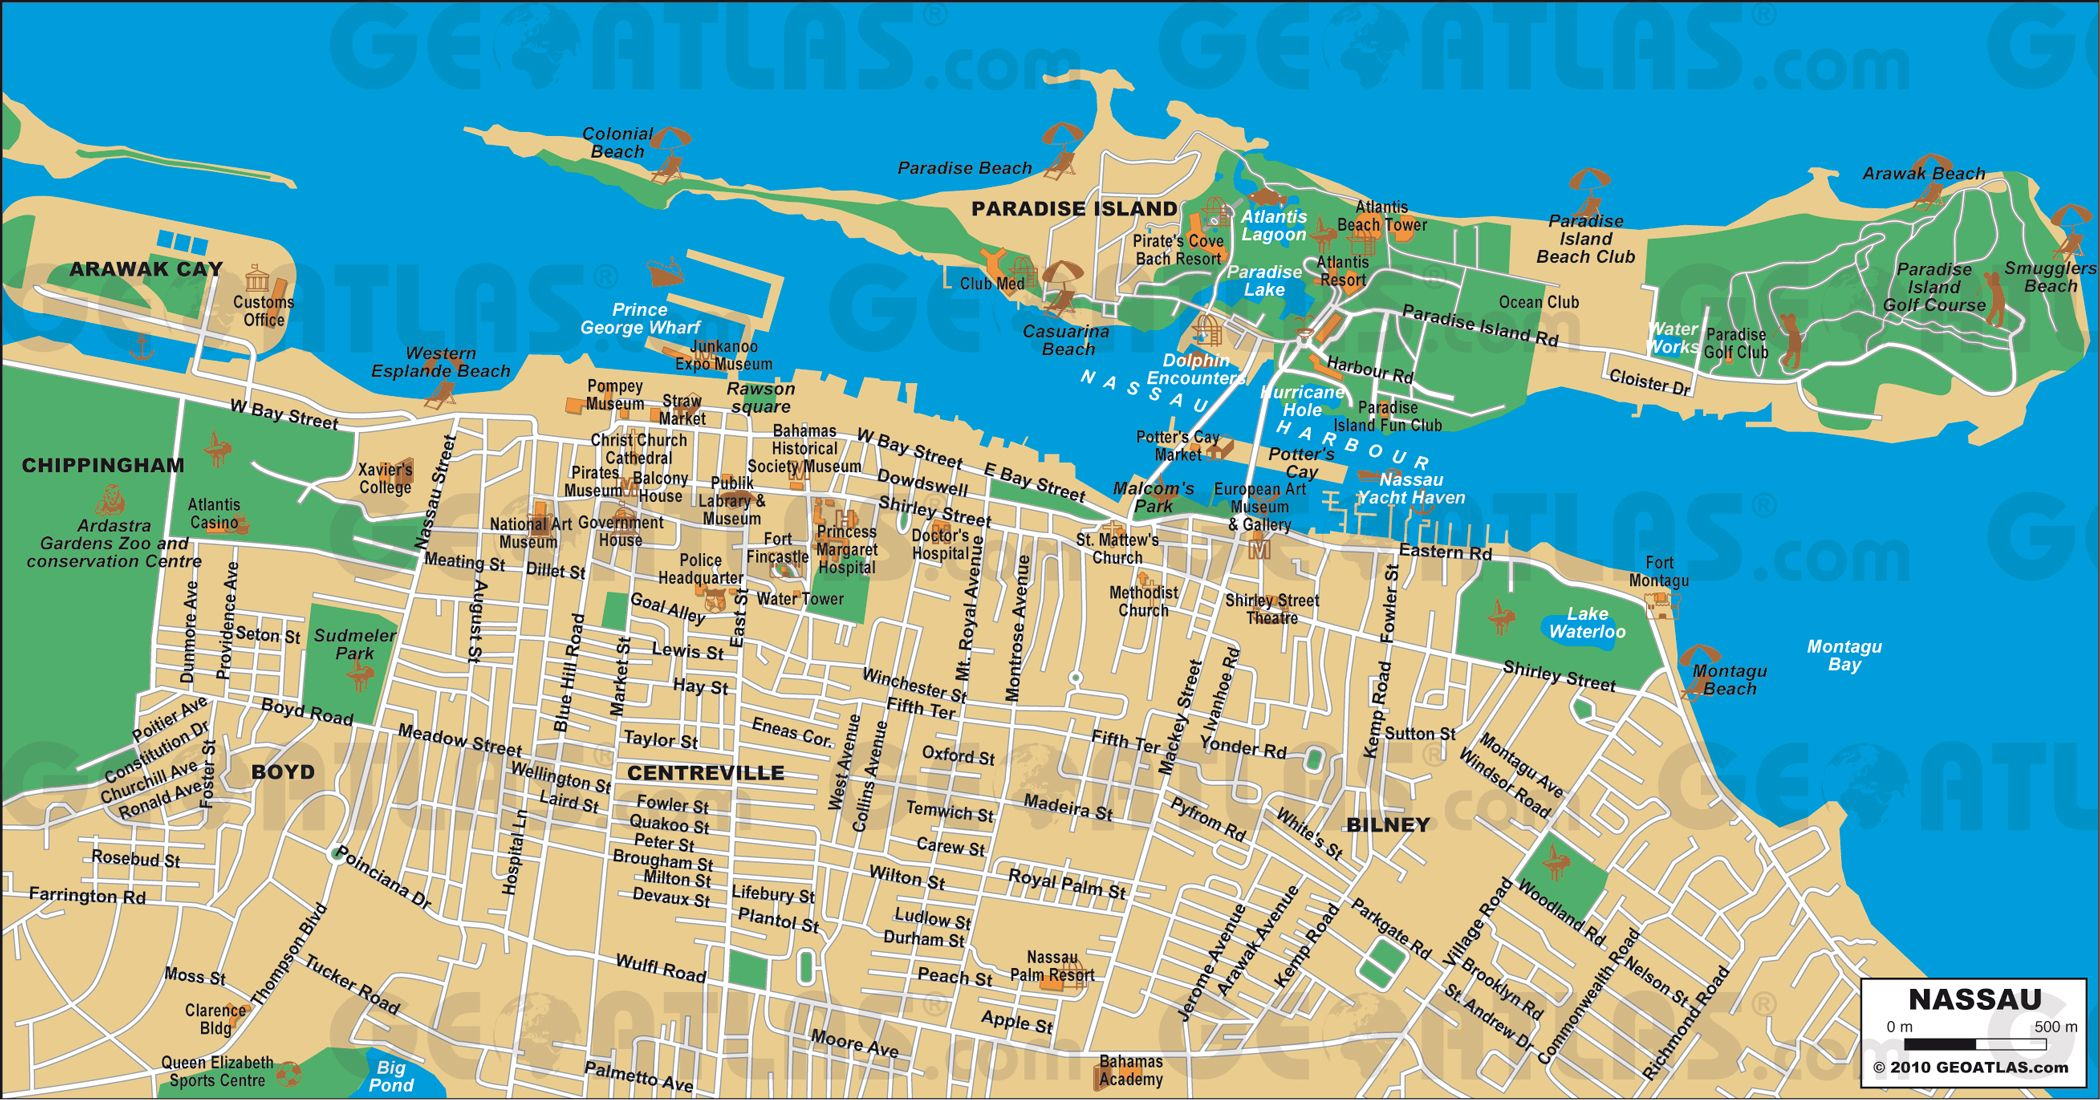 Nassau Cruise Port Guide CruisePortWiki Homeschool cruise – Tourist Map Of Nassau Bahamas